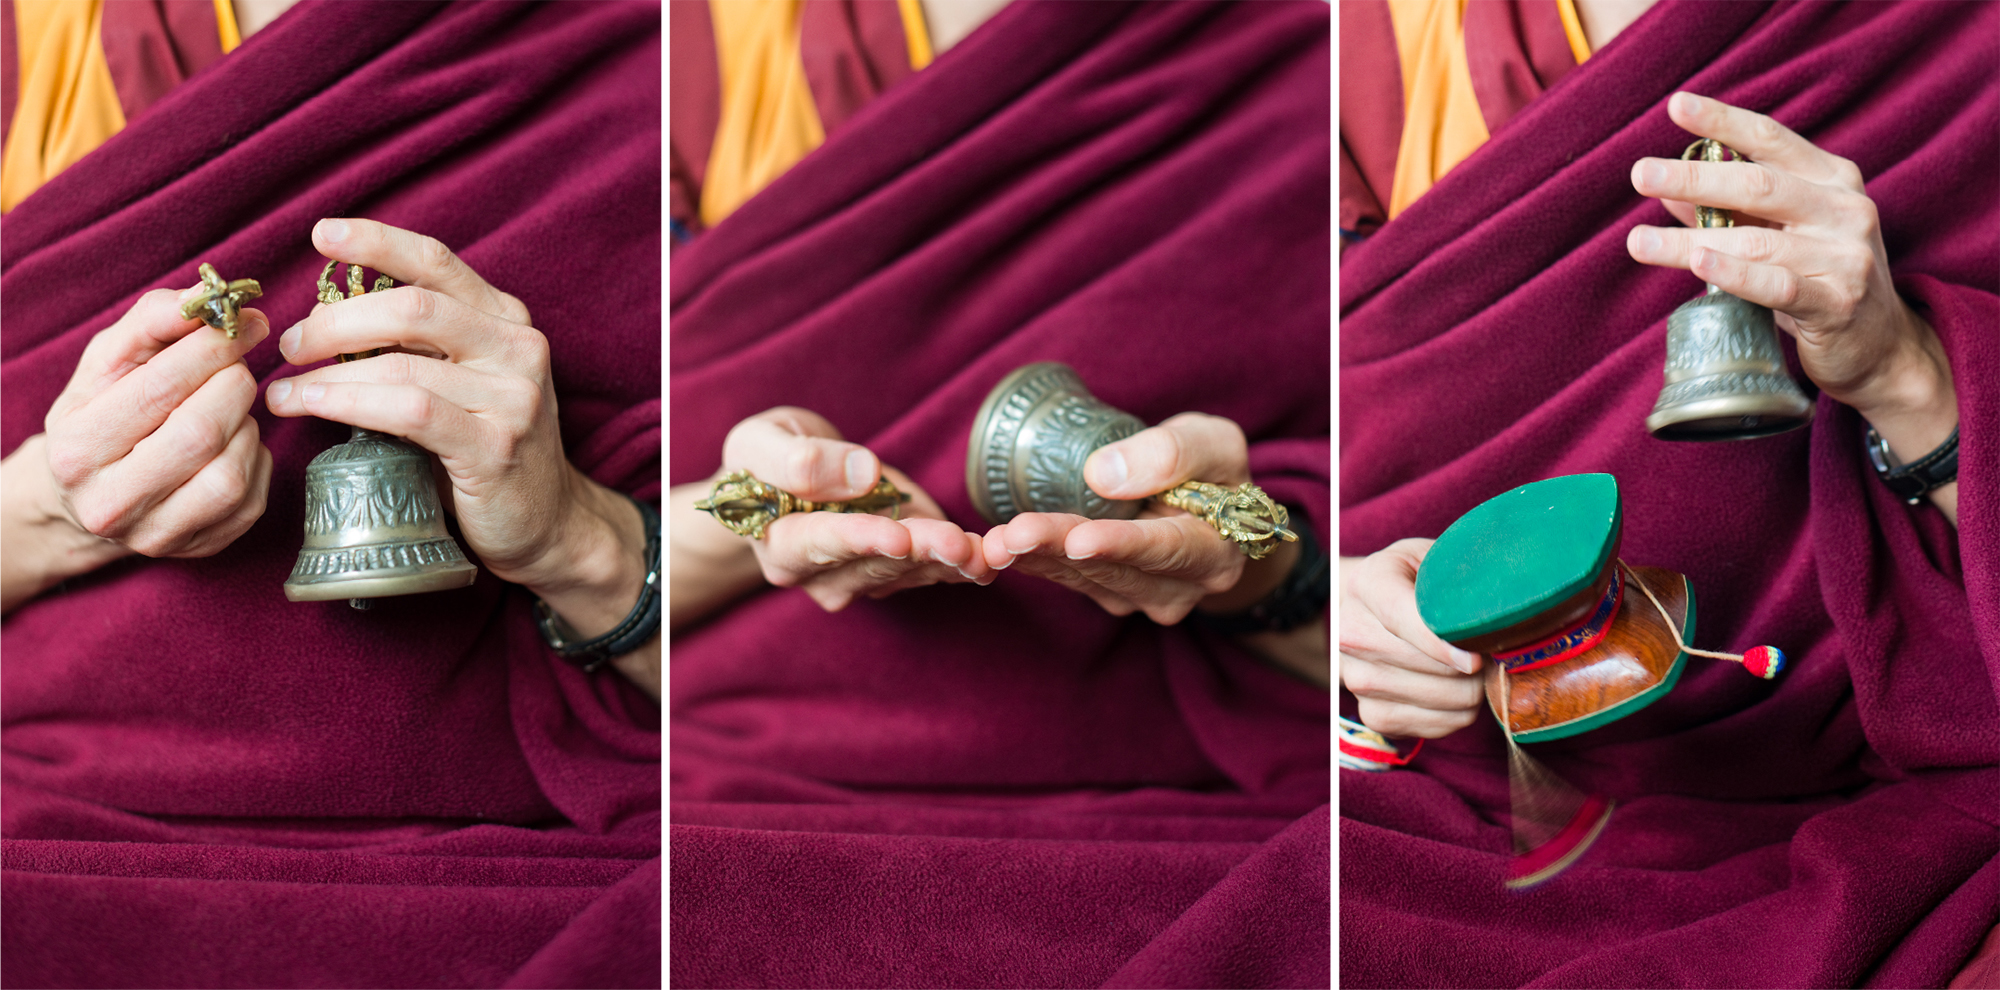 These are the Tantric implements used in puja. The bell, Vajra and Damaru (drum) together symbolise wisdom and the great, indesctructable bliss found through attaining enlightenment.